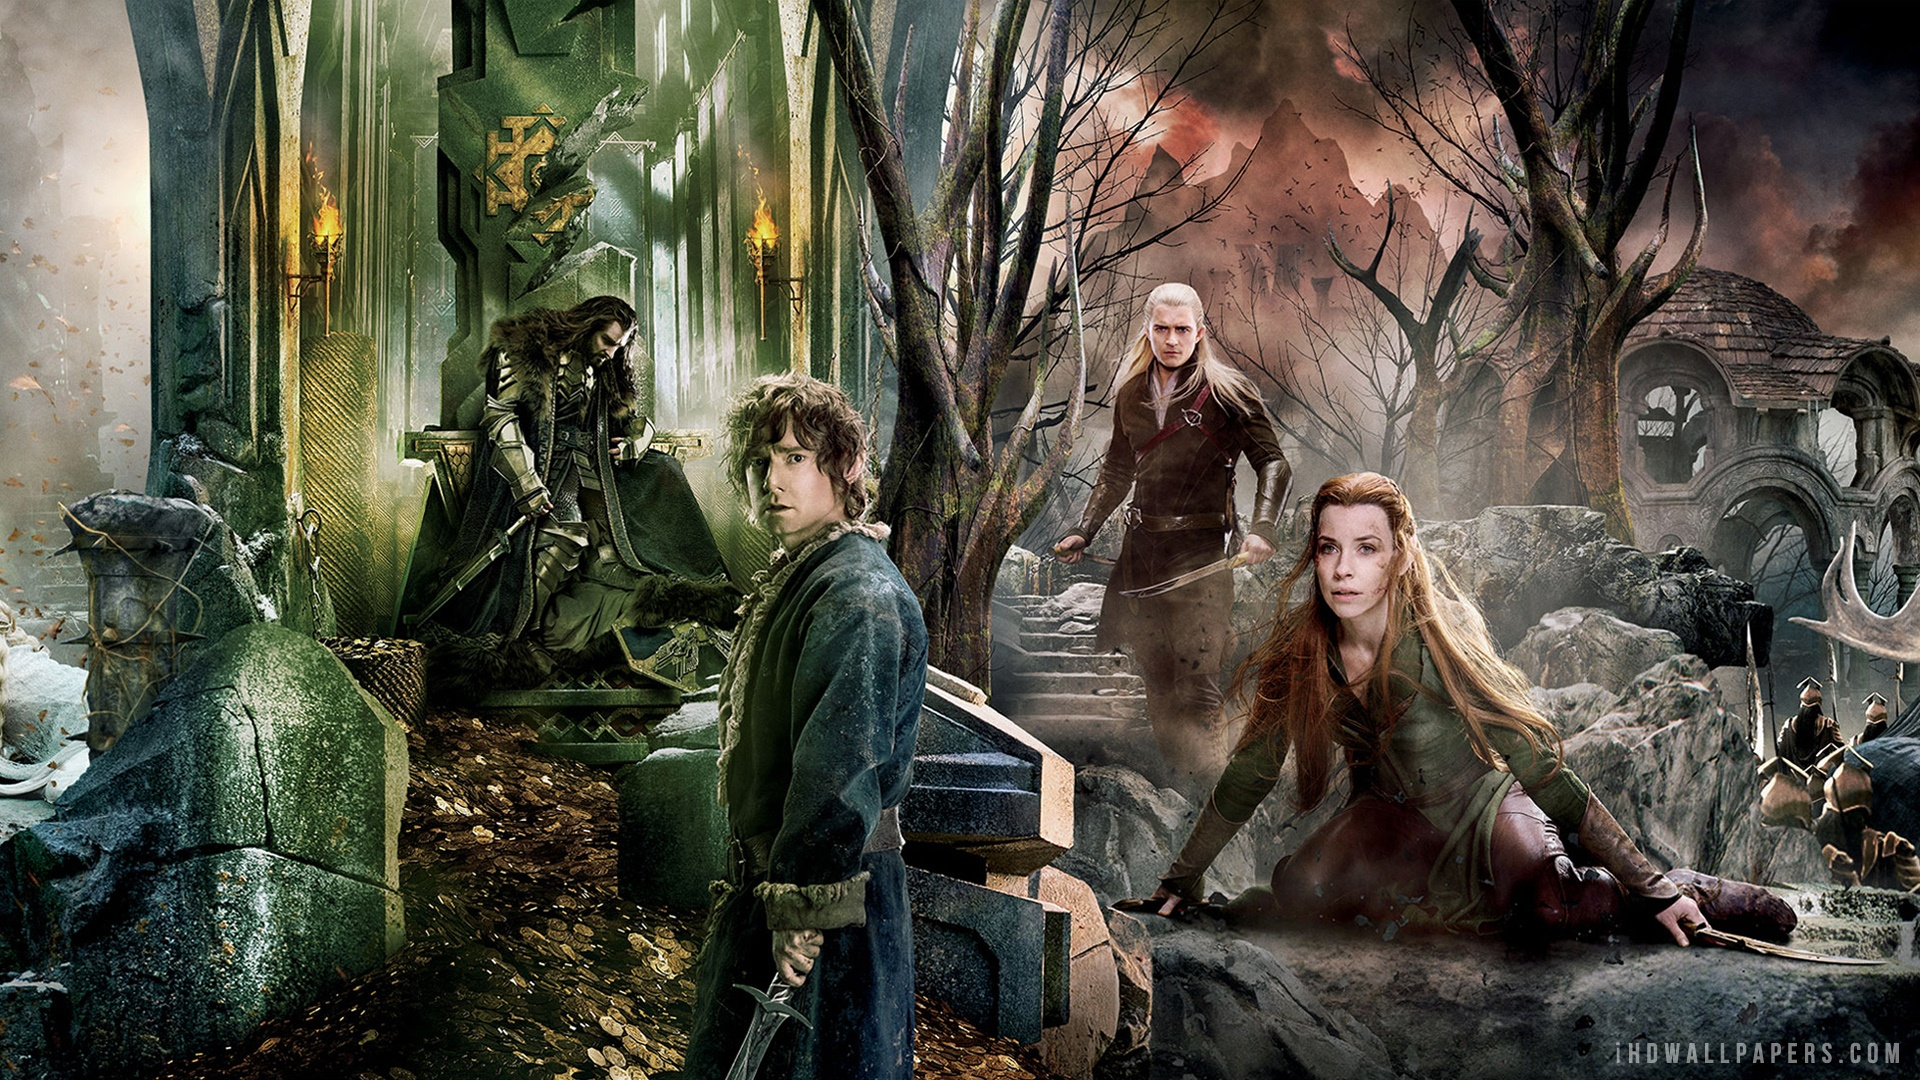 the hobbit the battle of the five armies 2014 movie 5 1920x1080jpg 1920x1080